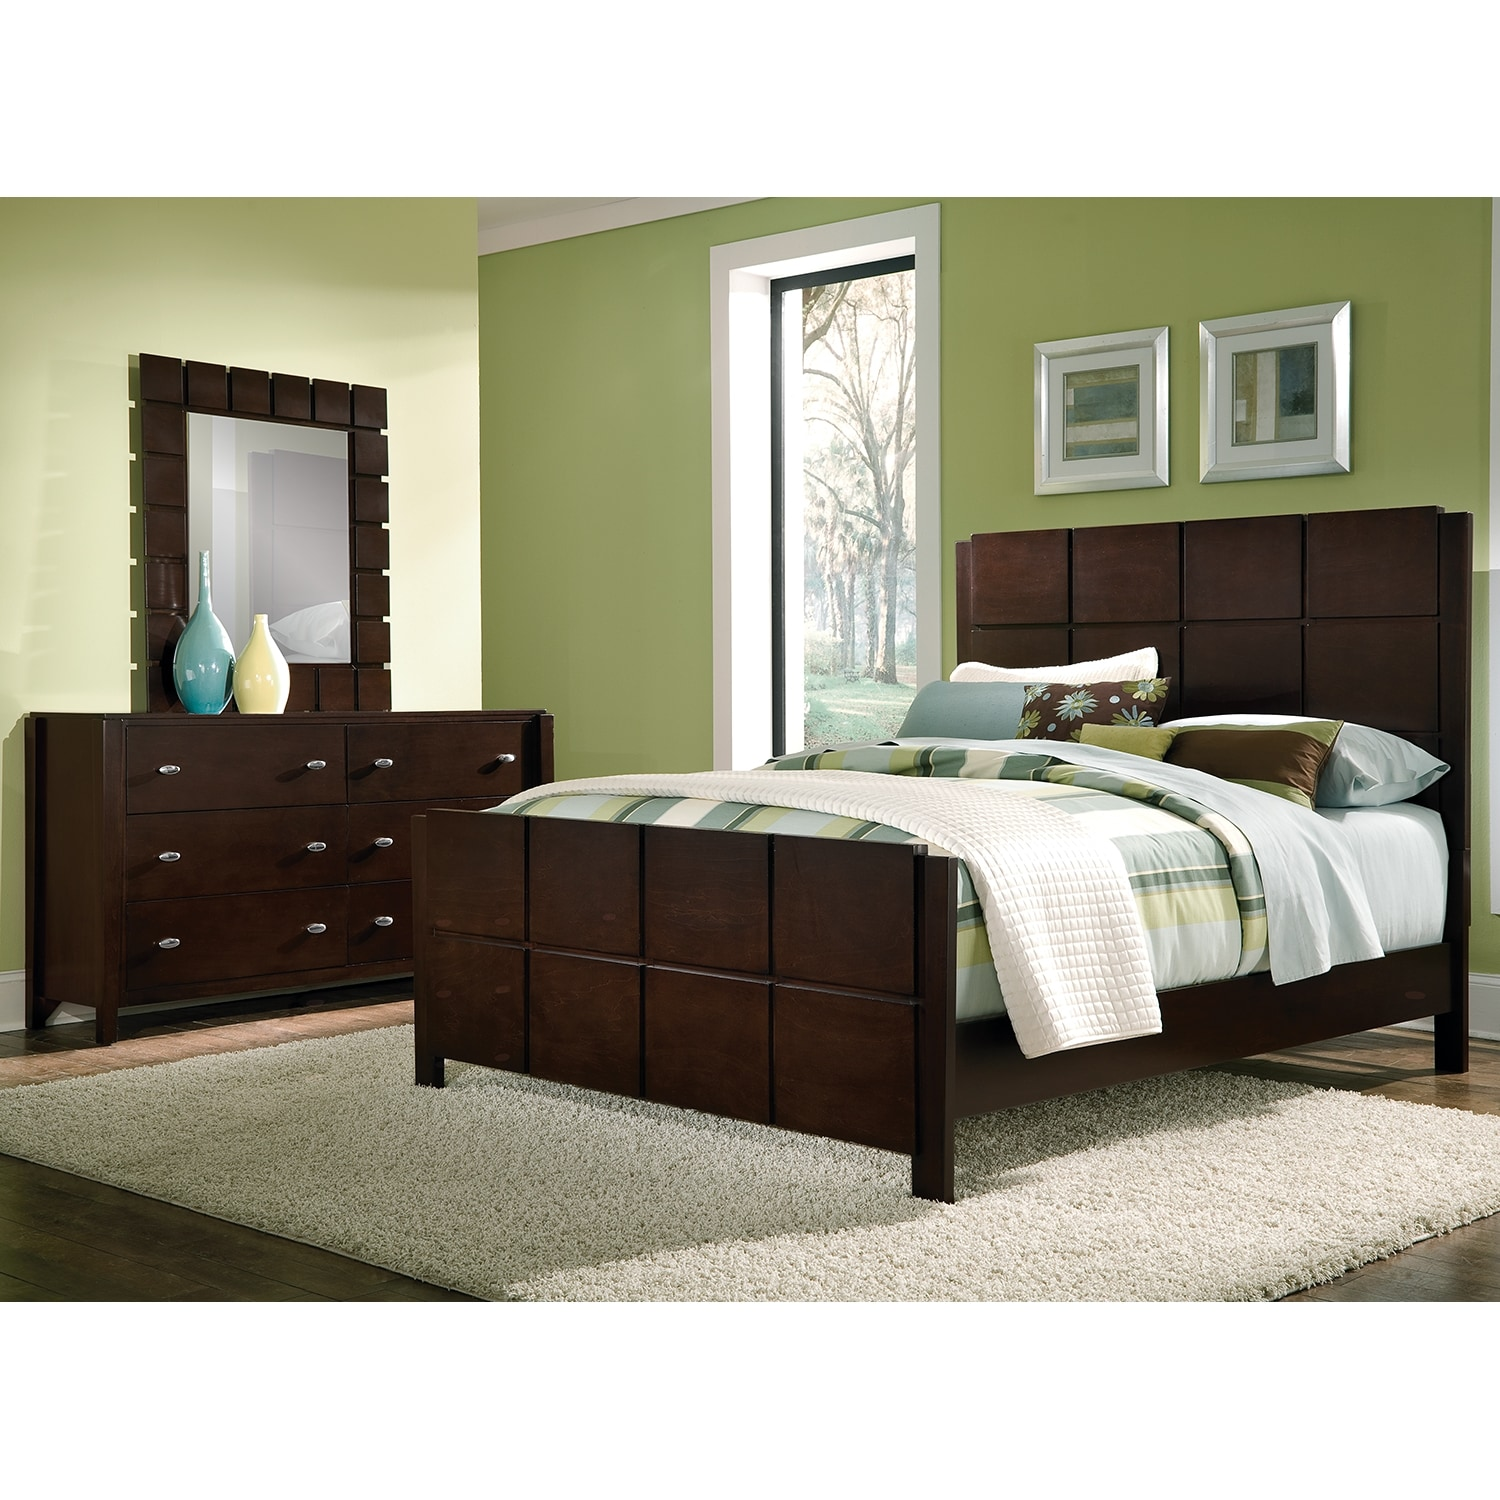 Bedroom Furniture - Mosaic 5 Pc. Queen Bedroom